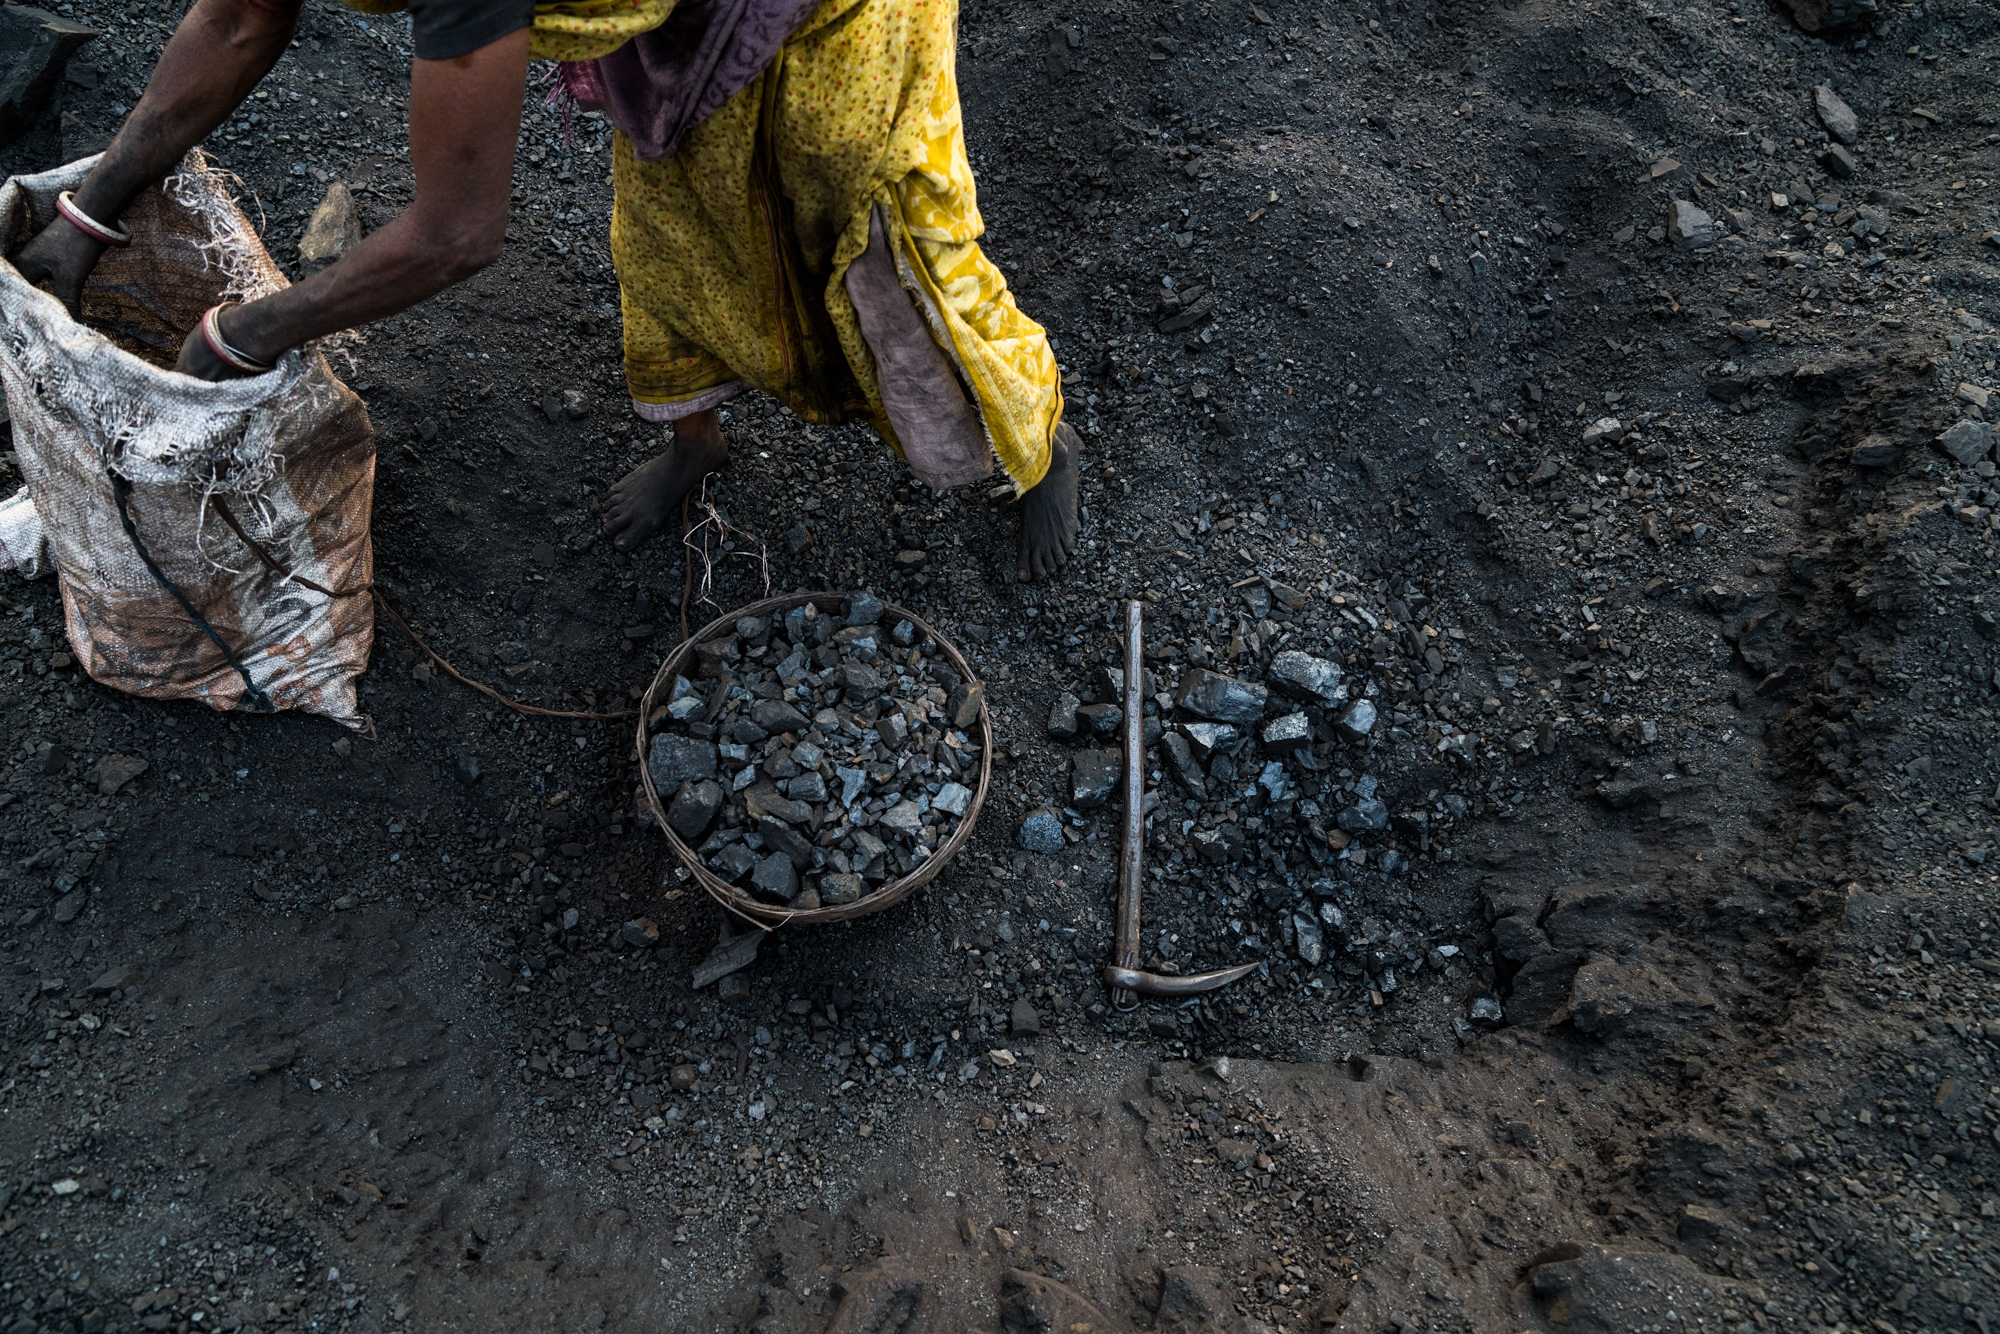 A basket full of coal amongst a coal miners tools. This coal will be transported to be sold or used personally as cooking fuel. India.